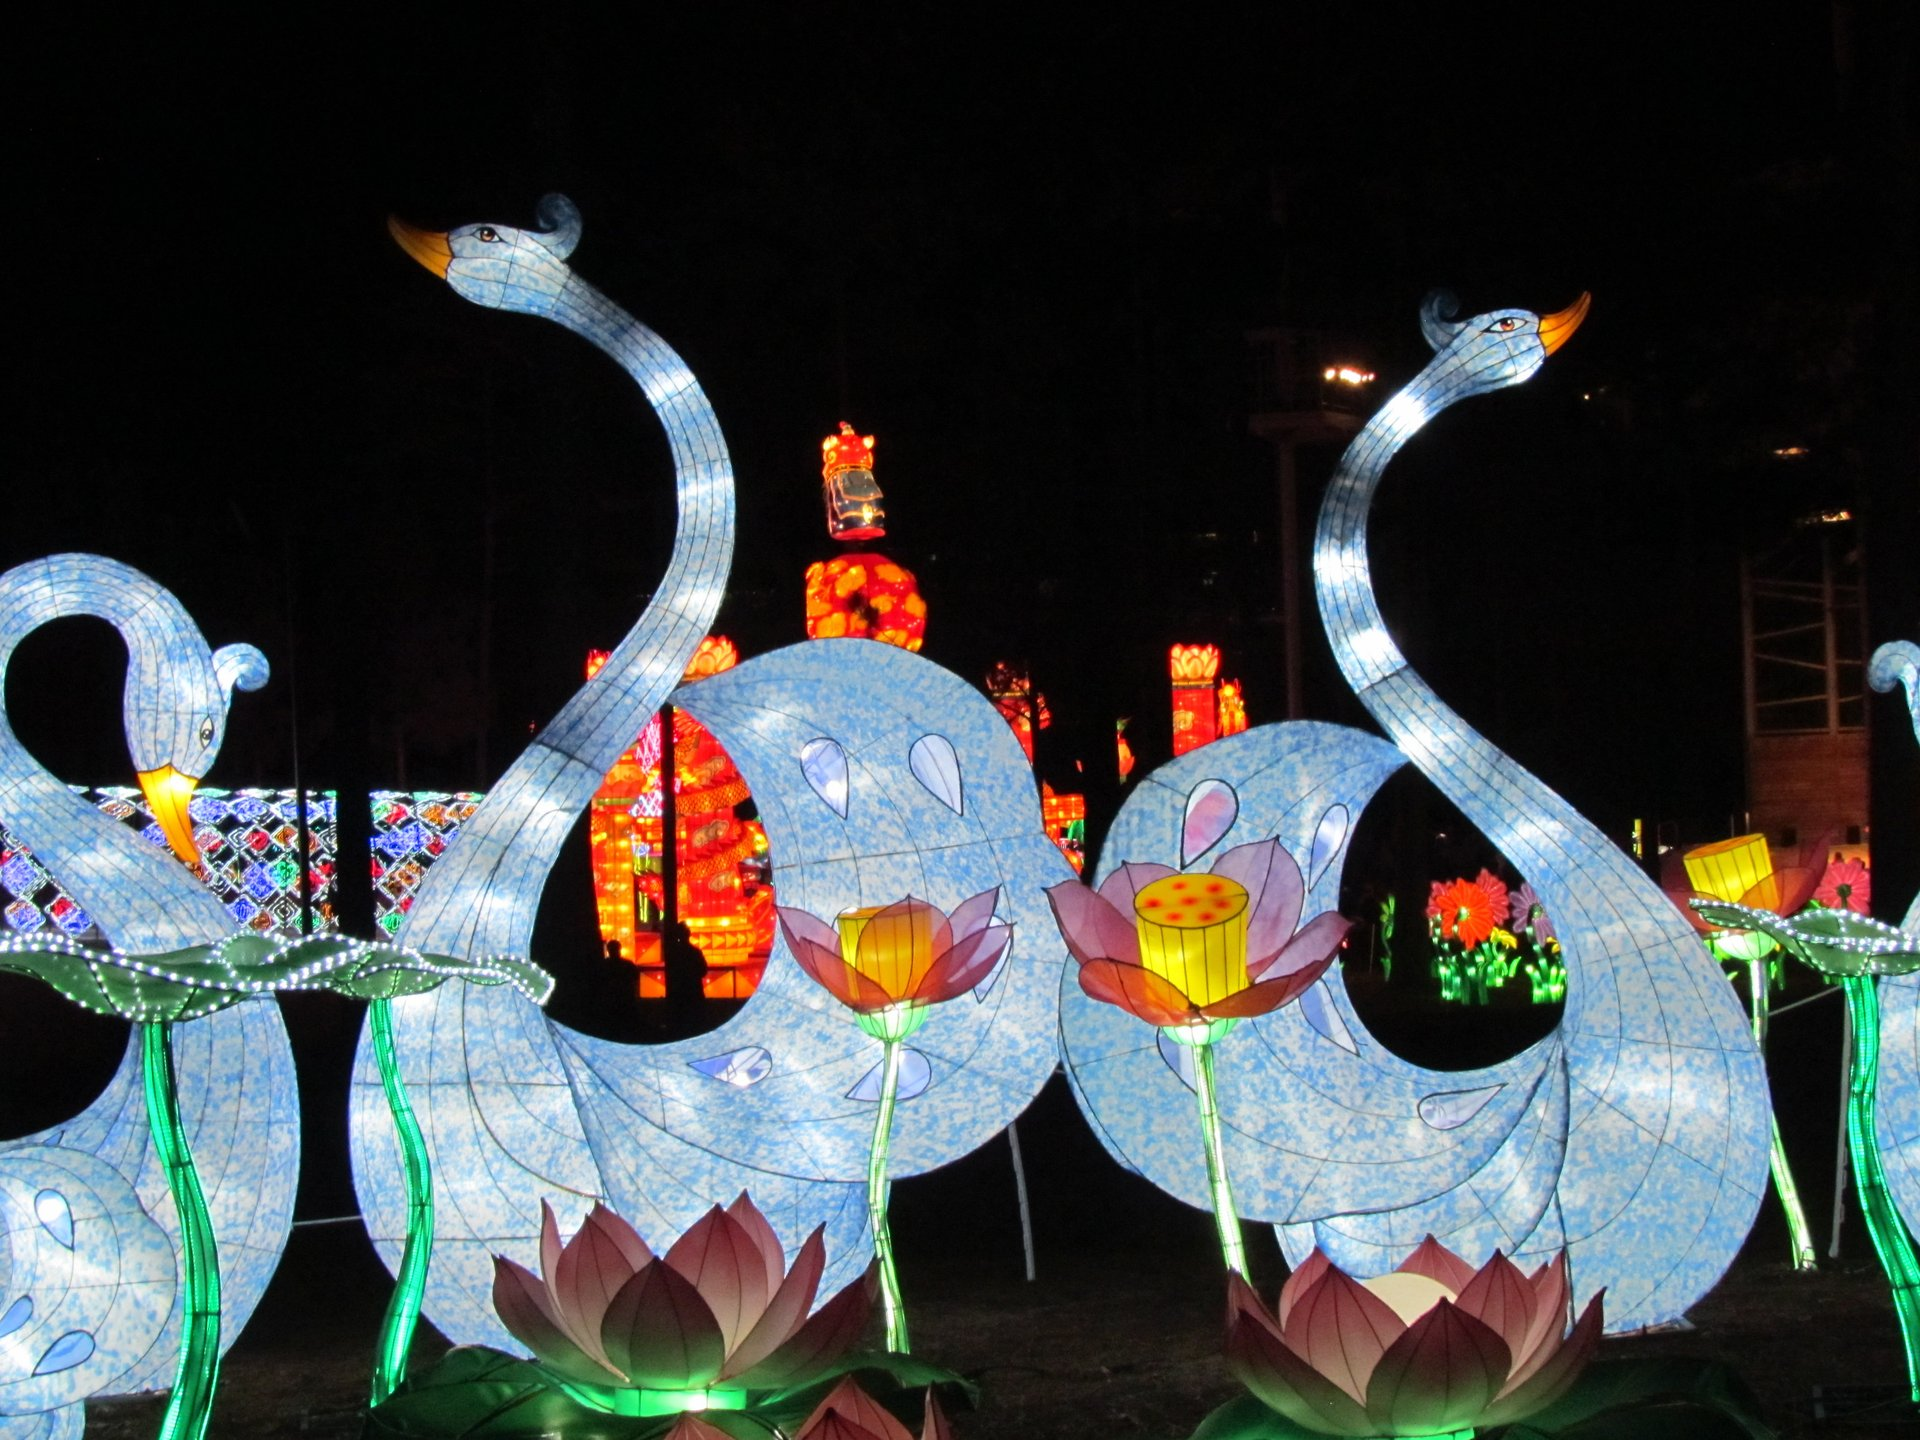 Crystal swans during NC Chinese Lantern Festival in Cary 2020